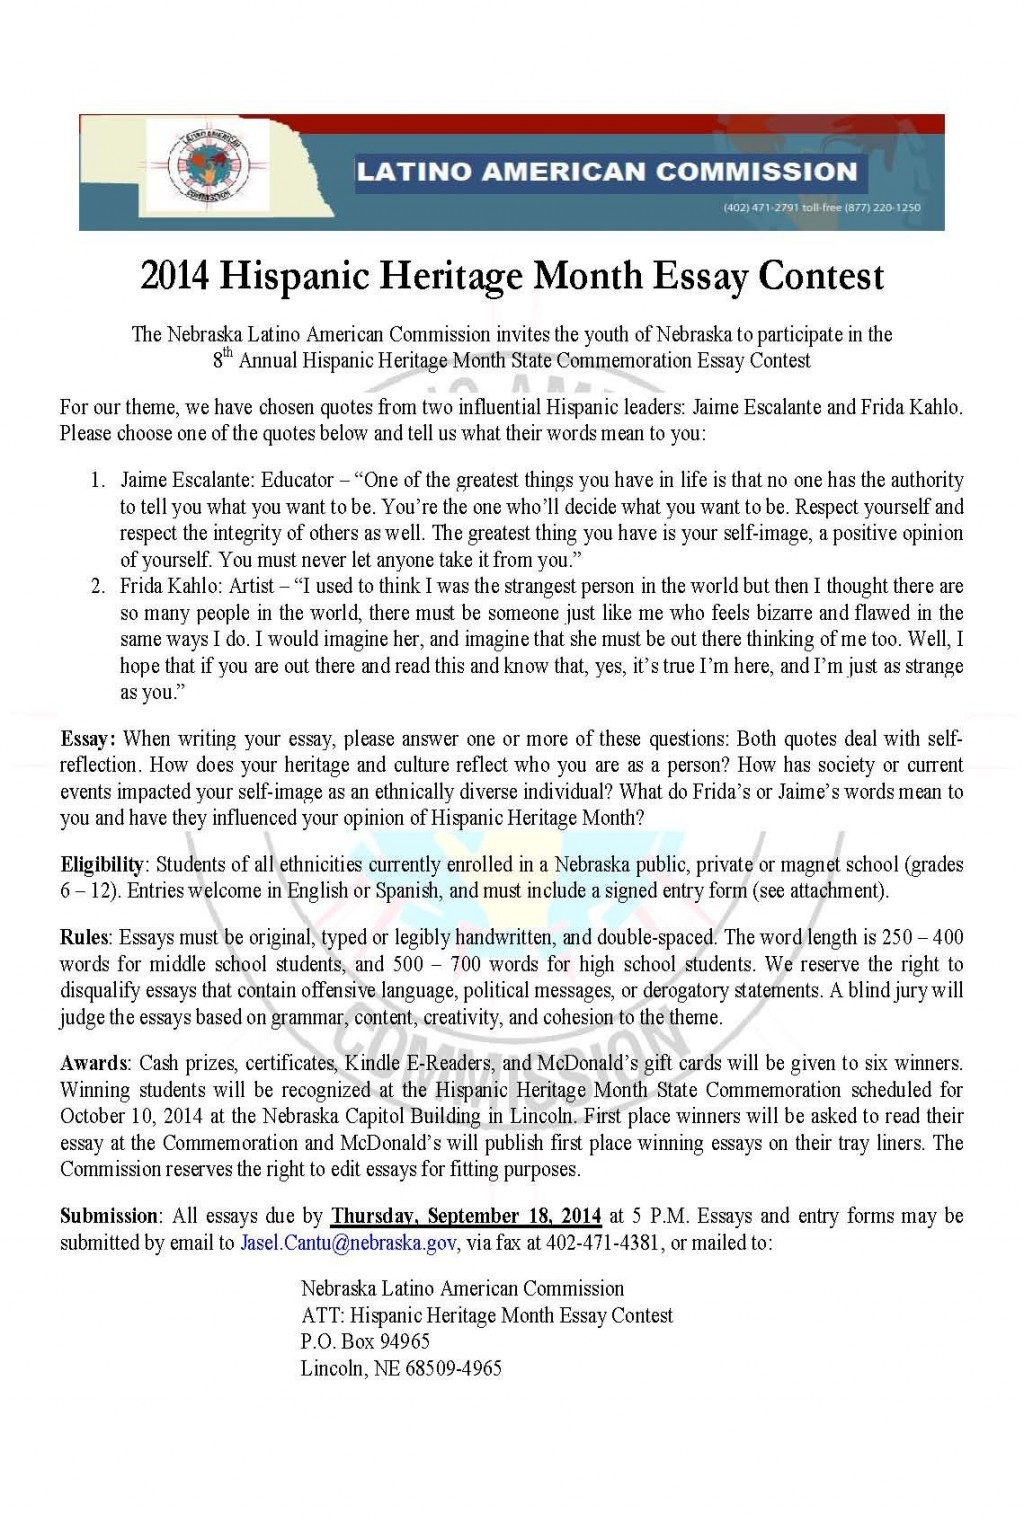 015 Essay Example Culture Shock Fearsome Prompt Story Titles Large